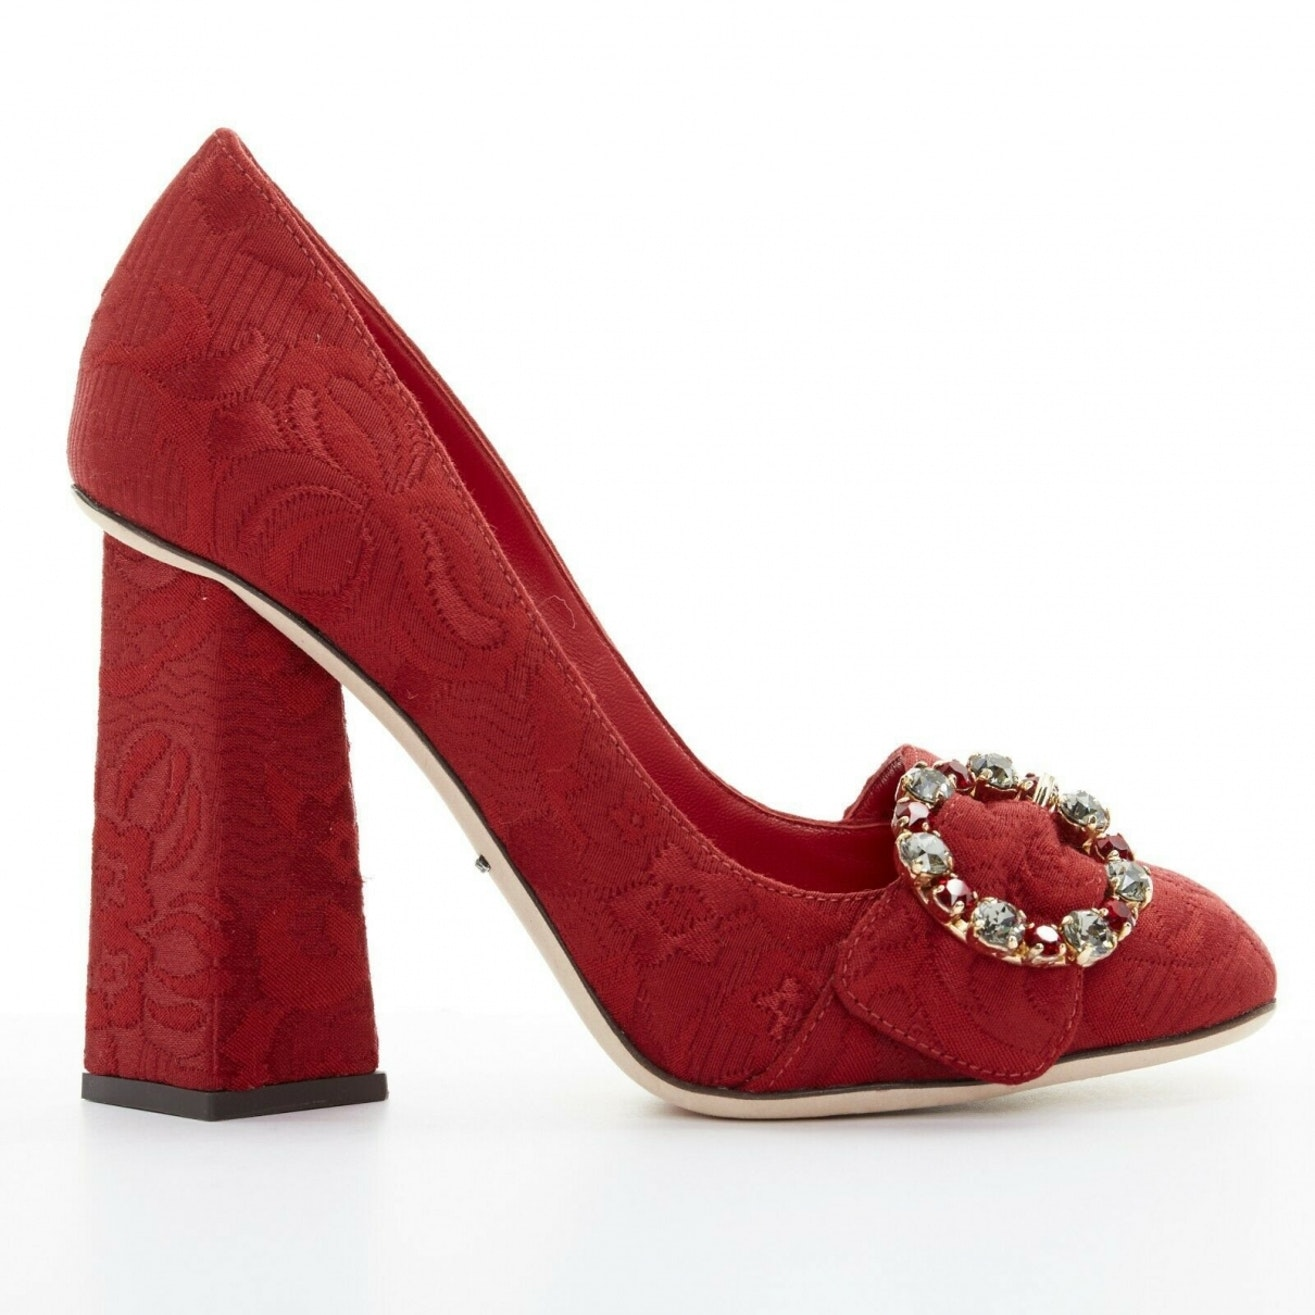 Dolce & Gabbana red brocade pump with embellished buckle